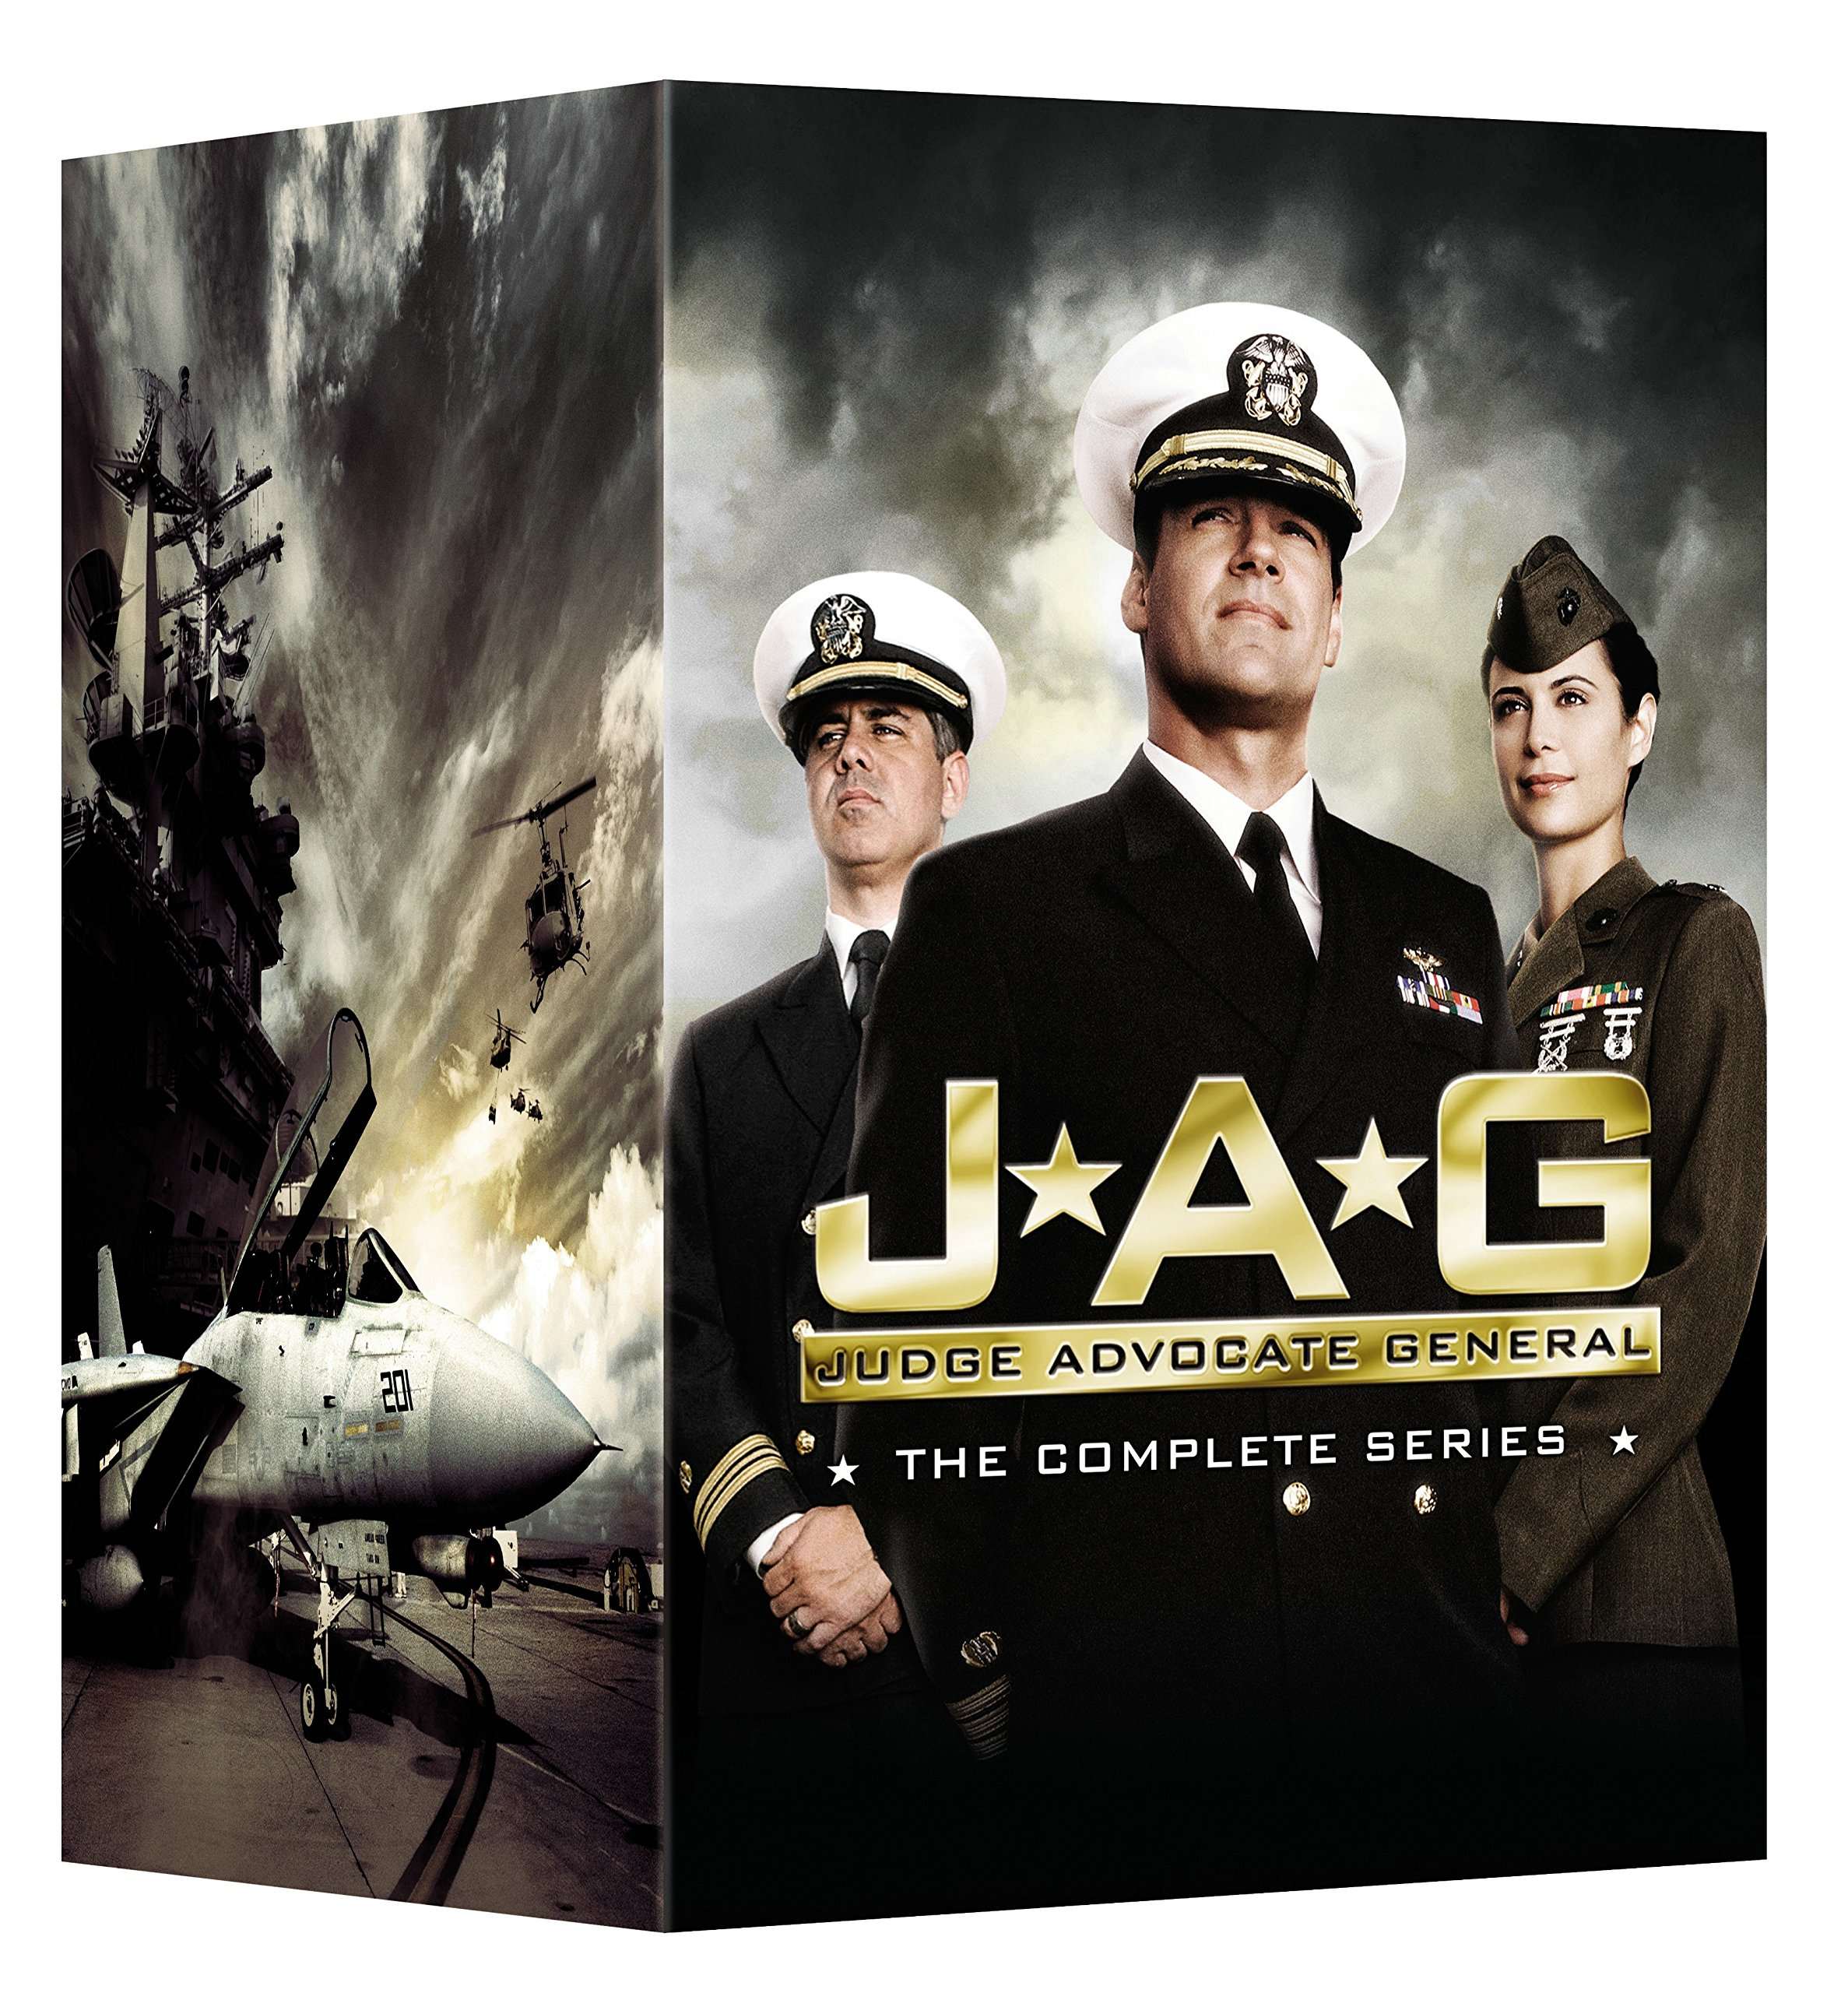 JAG: The Complete Series by Paramount